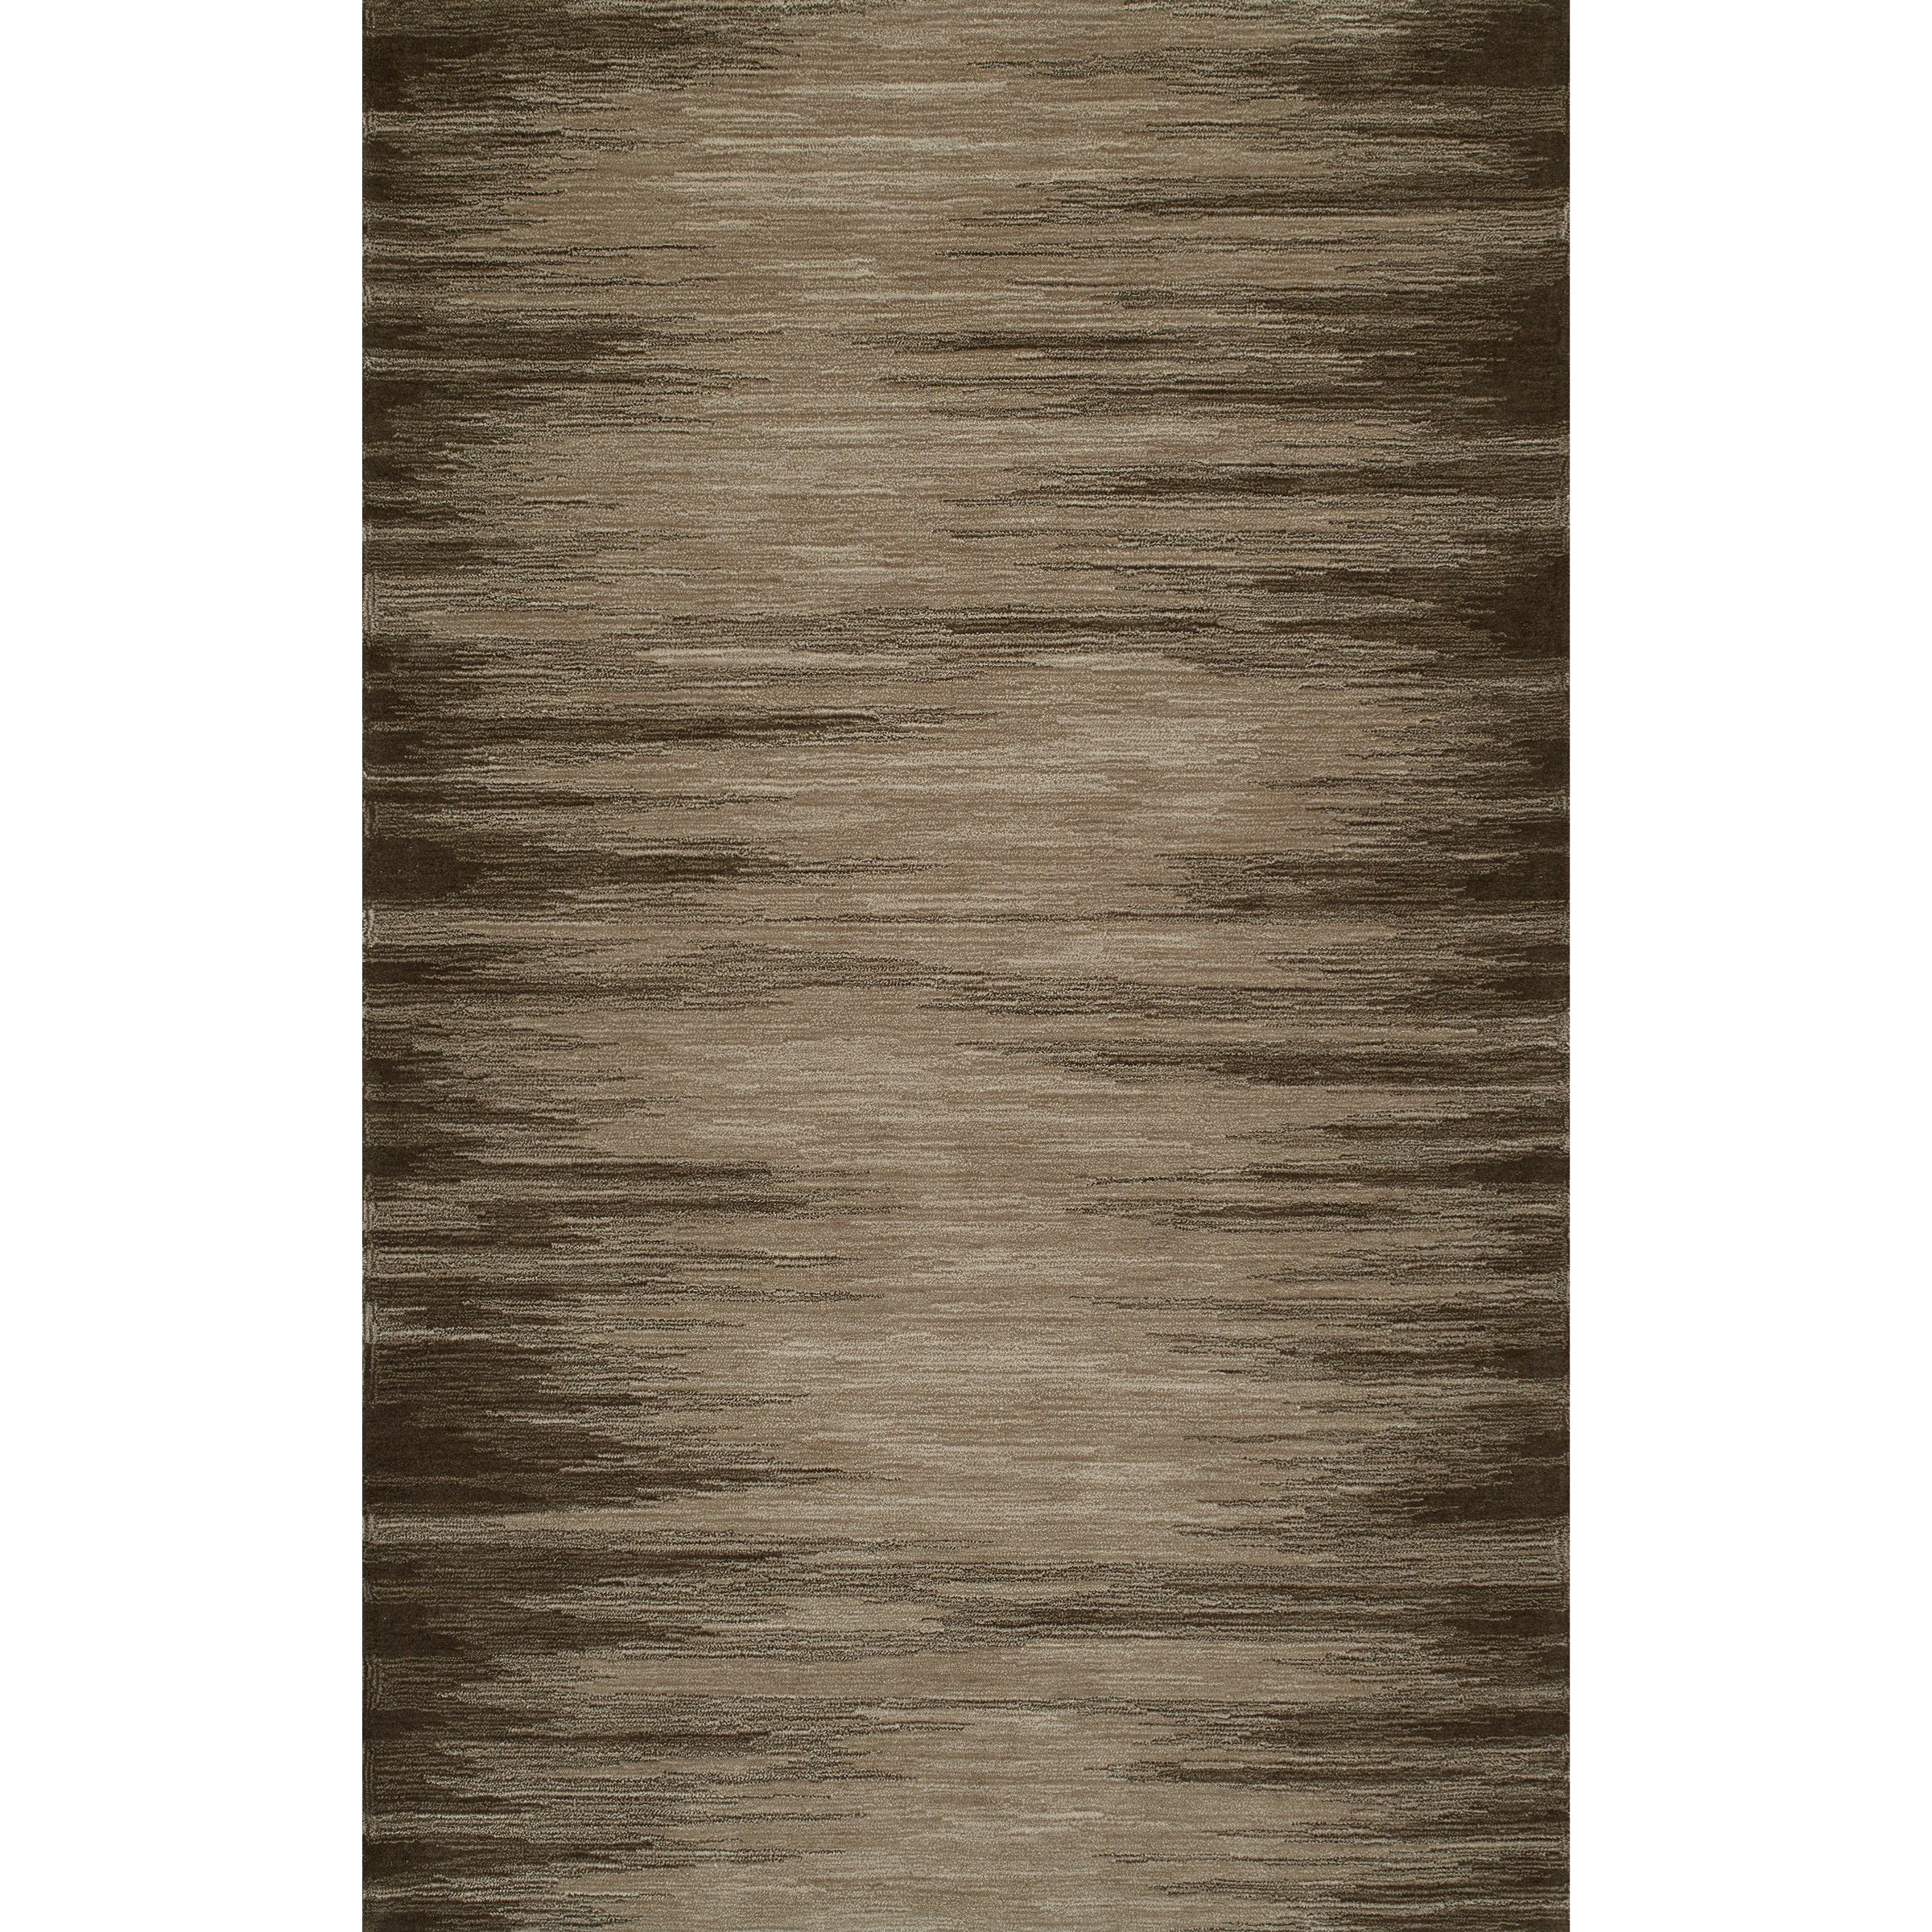 DelMar Chocolate 8'X10' Rug at Rotmans